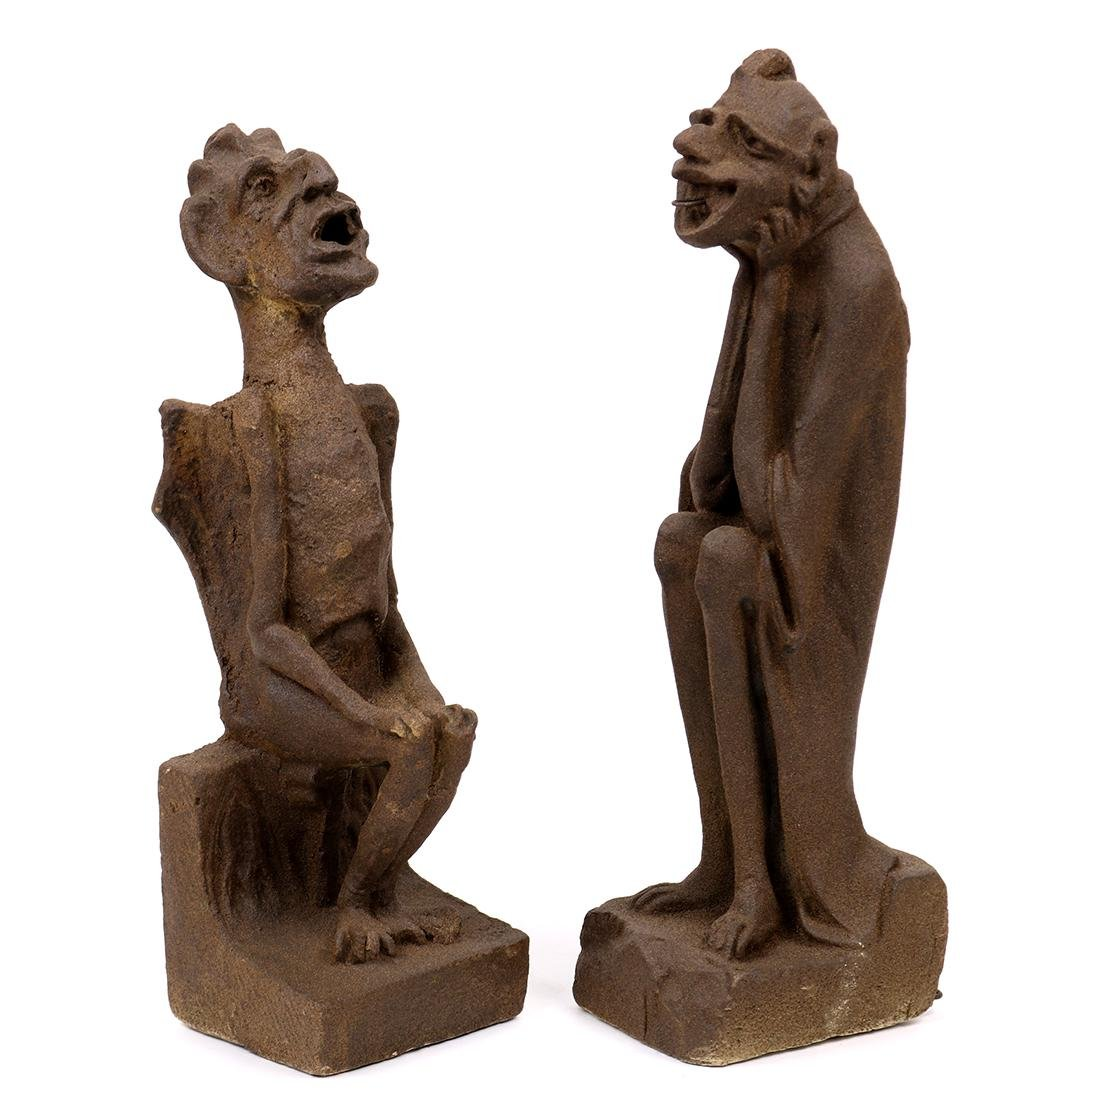 (lot of 2) Architectural composition gargoyles, early